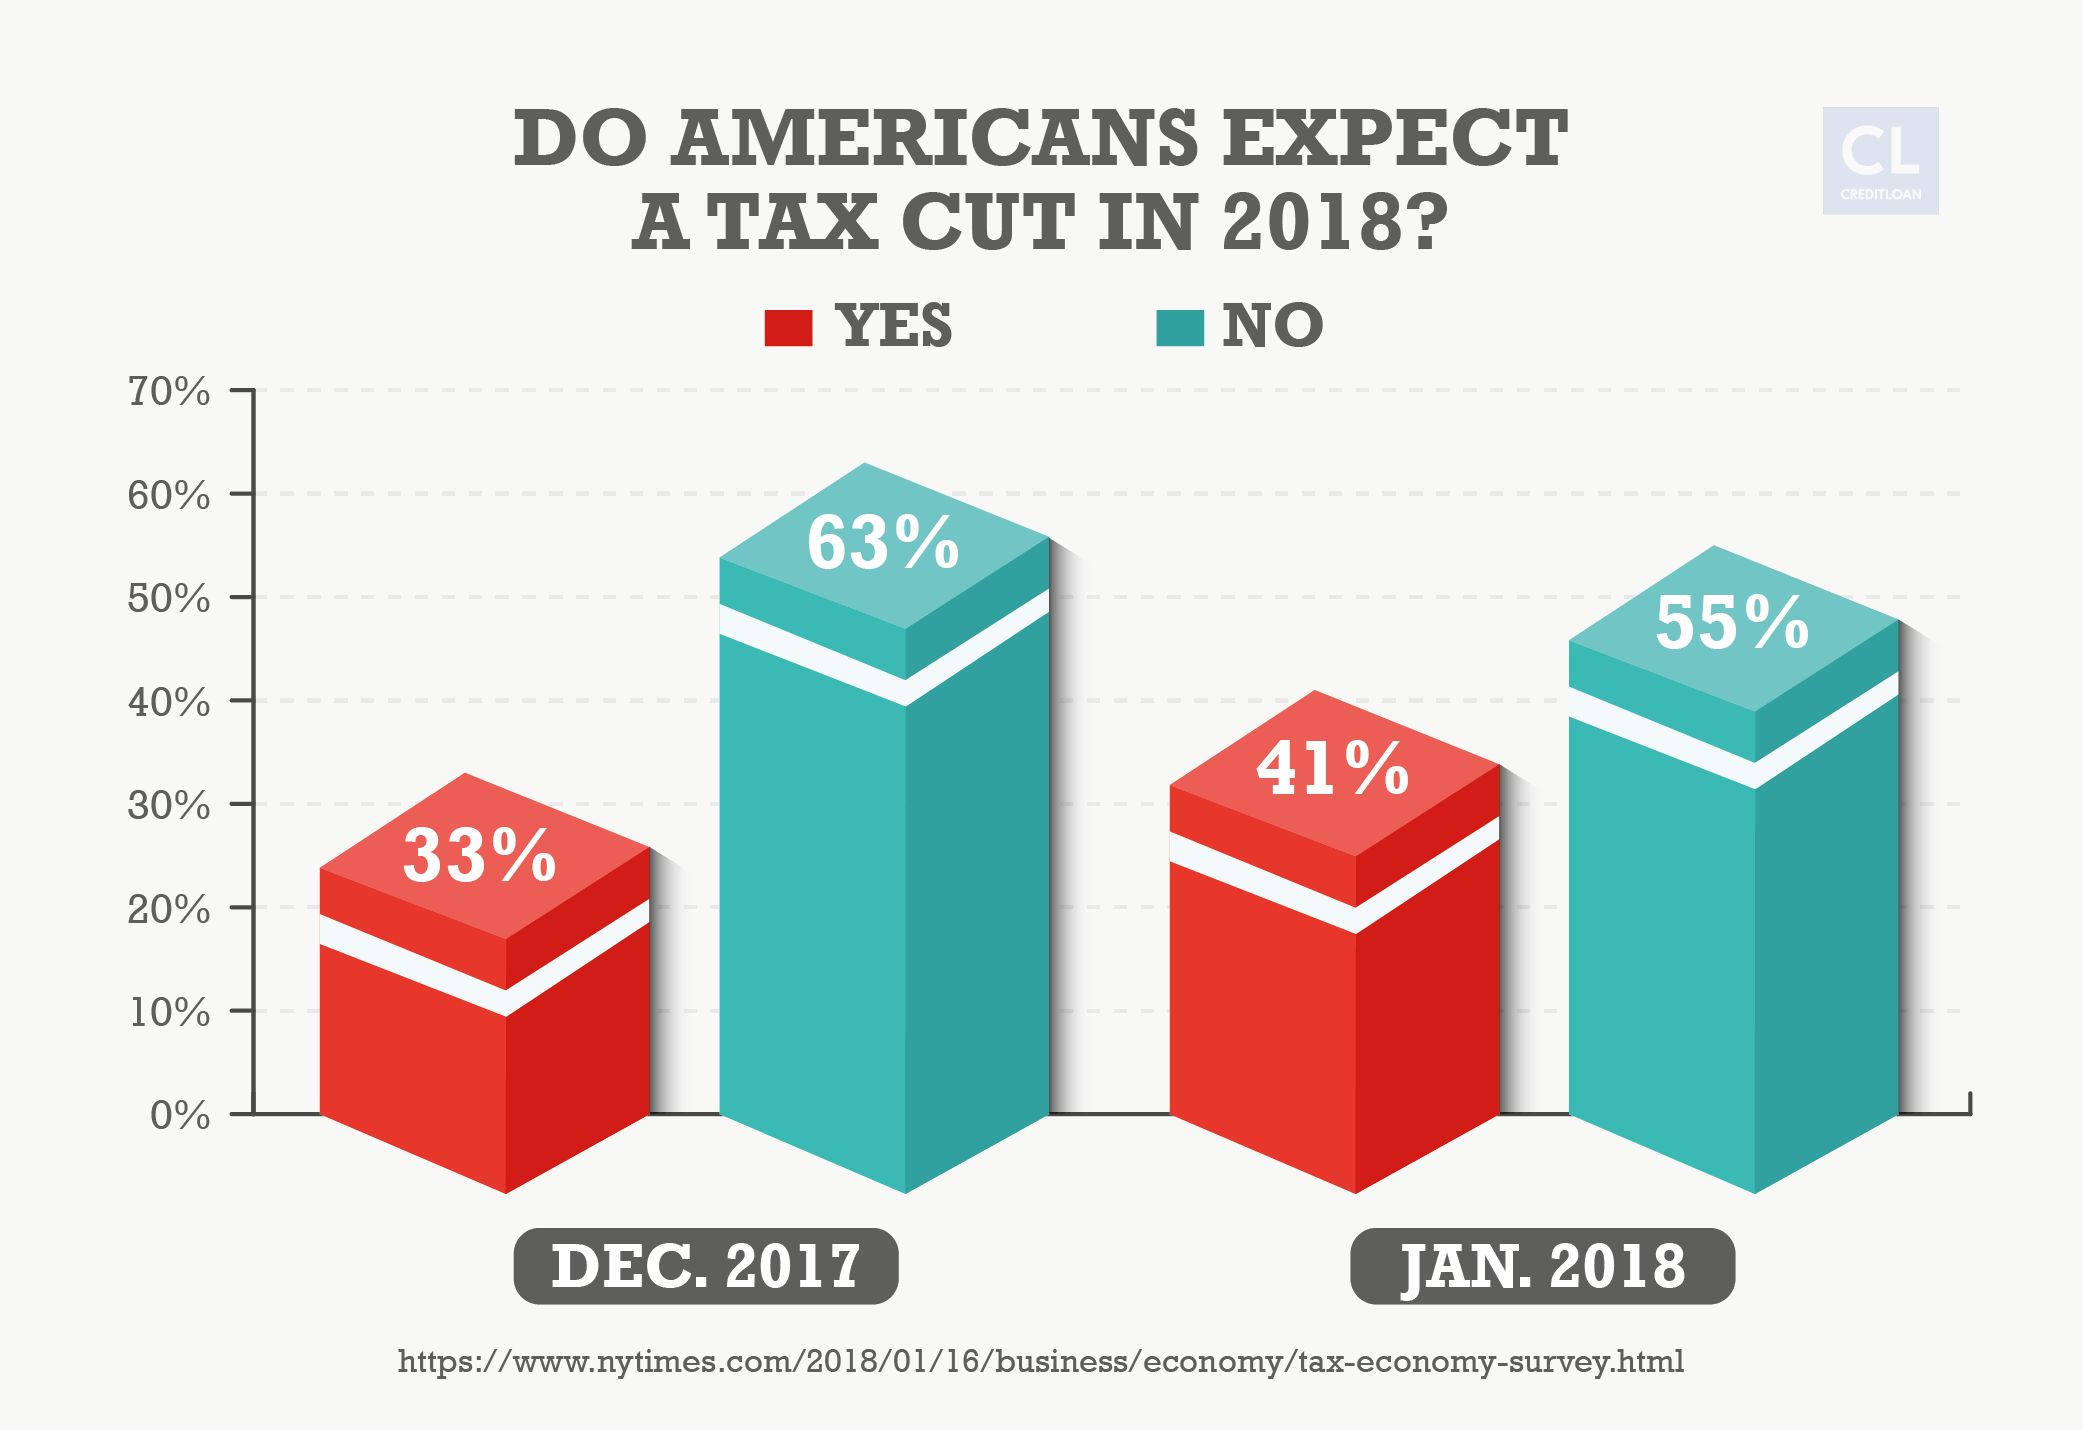 Survey: Do Americans Expect a Tax Cut in 2018?